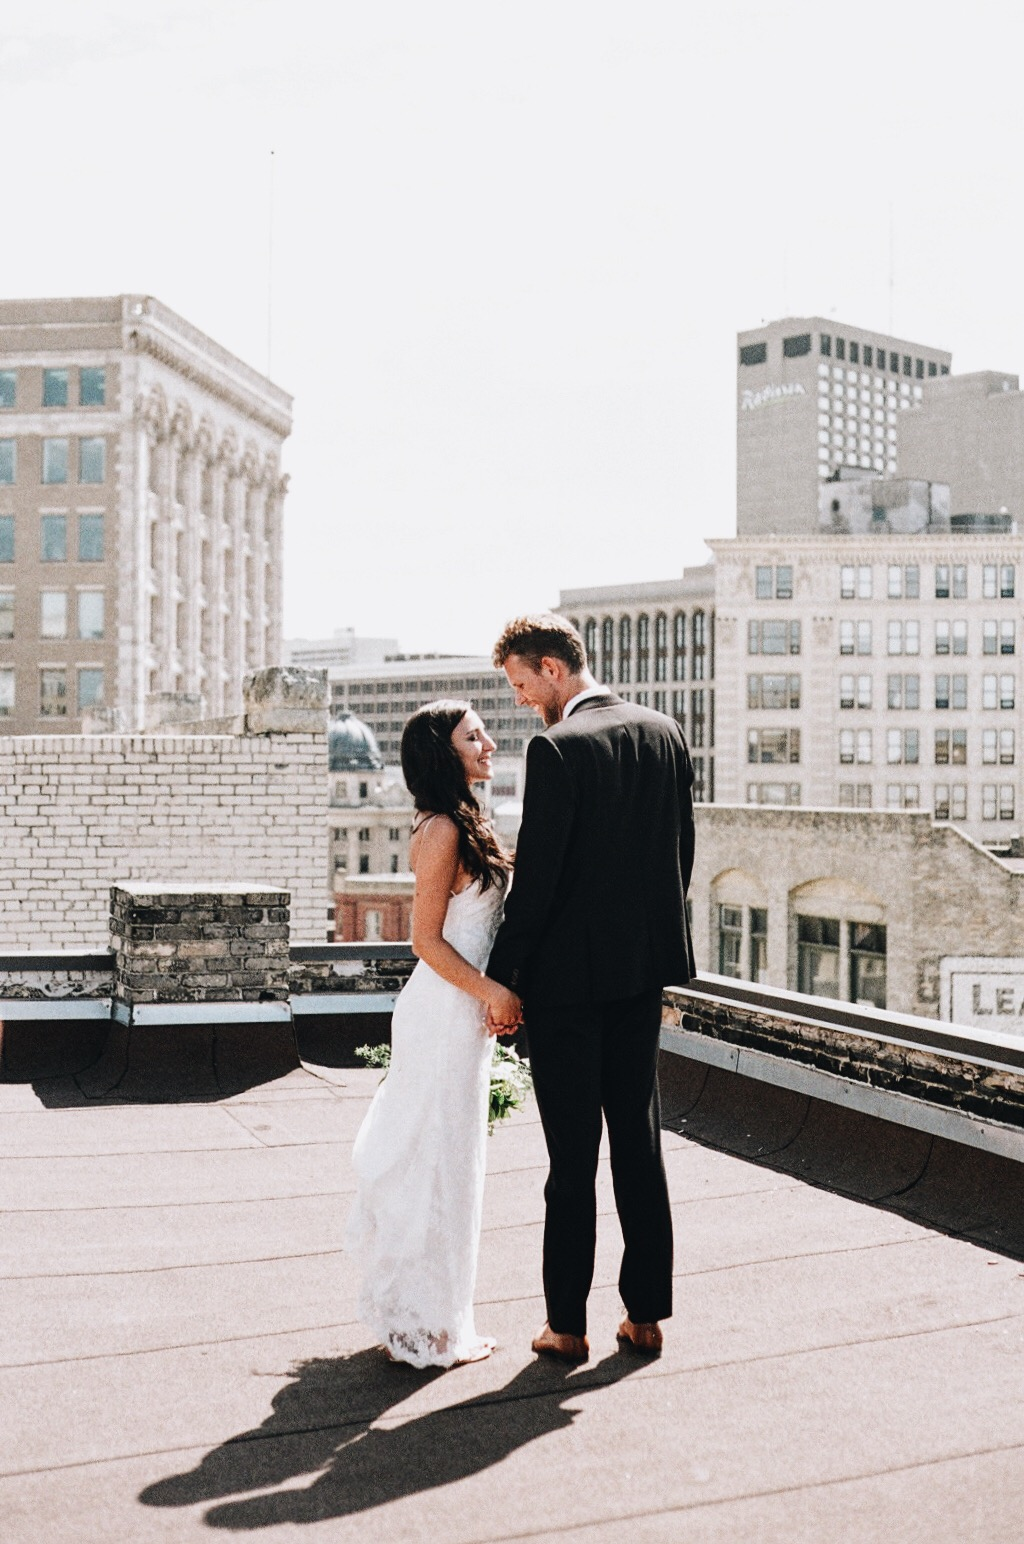 WEDDING PHOTOGRAPHY QUESTIONS & ANSWERS -